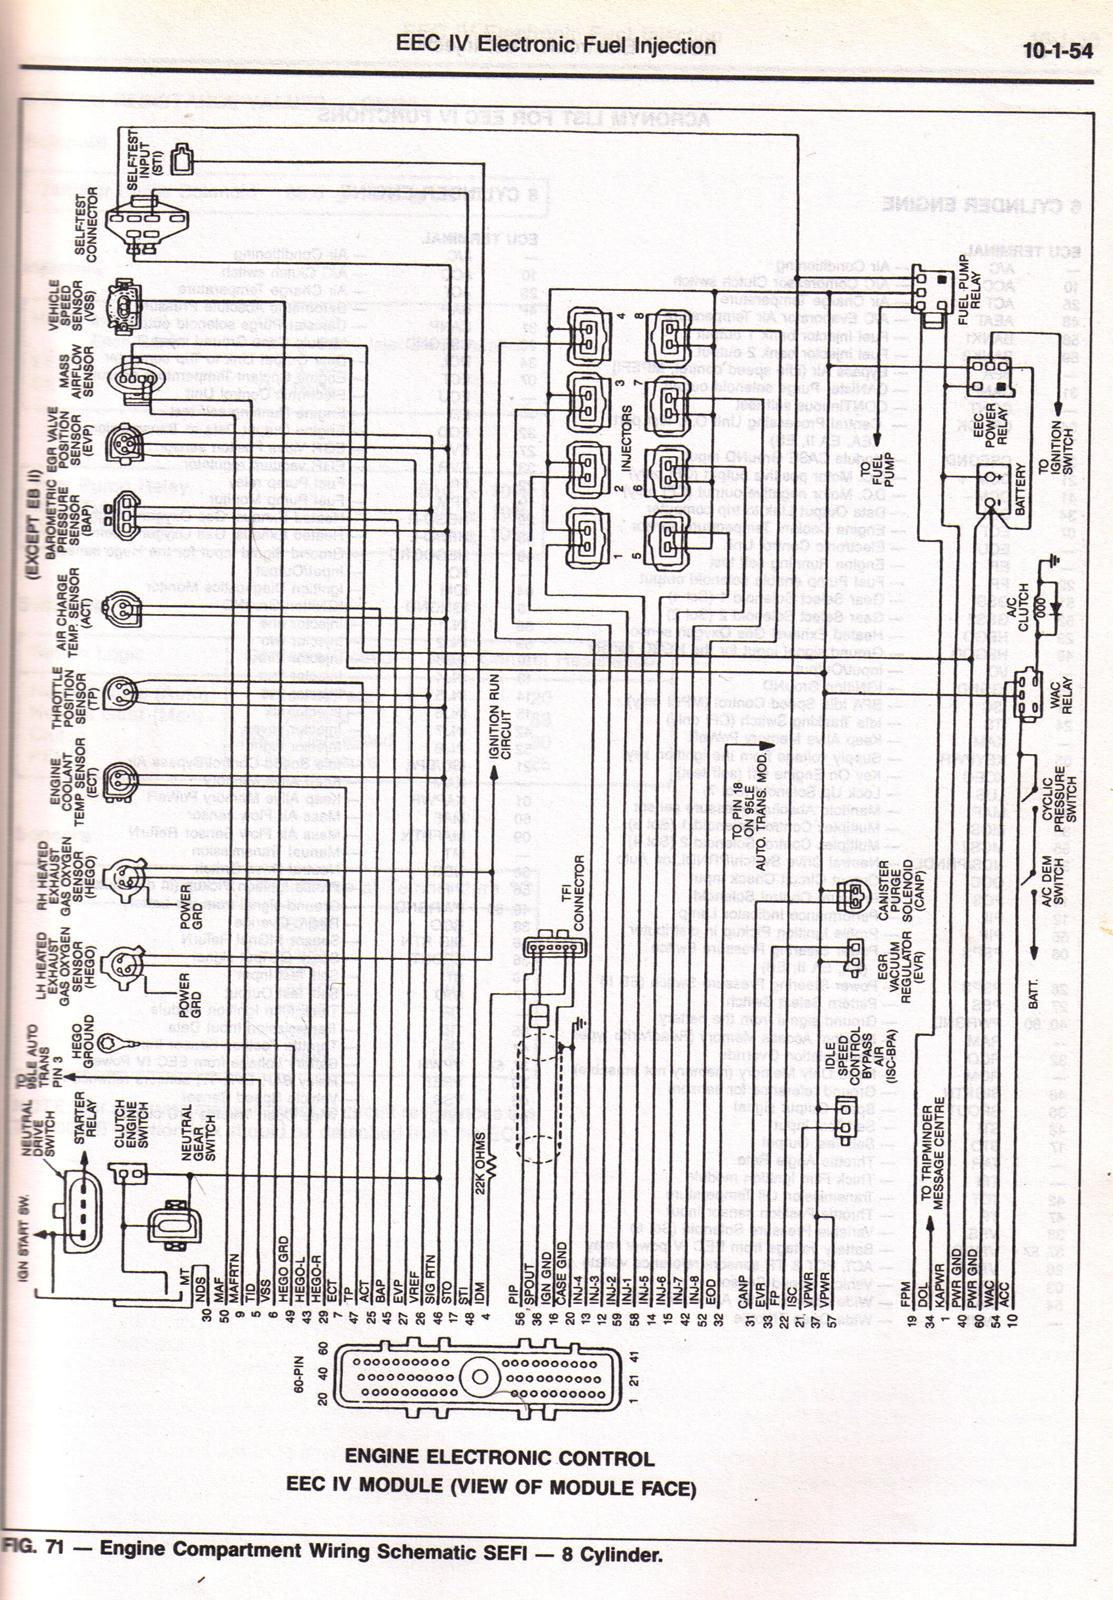 bf falcon wiring diagram xlr to stereo jack ef pdf 28 images